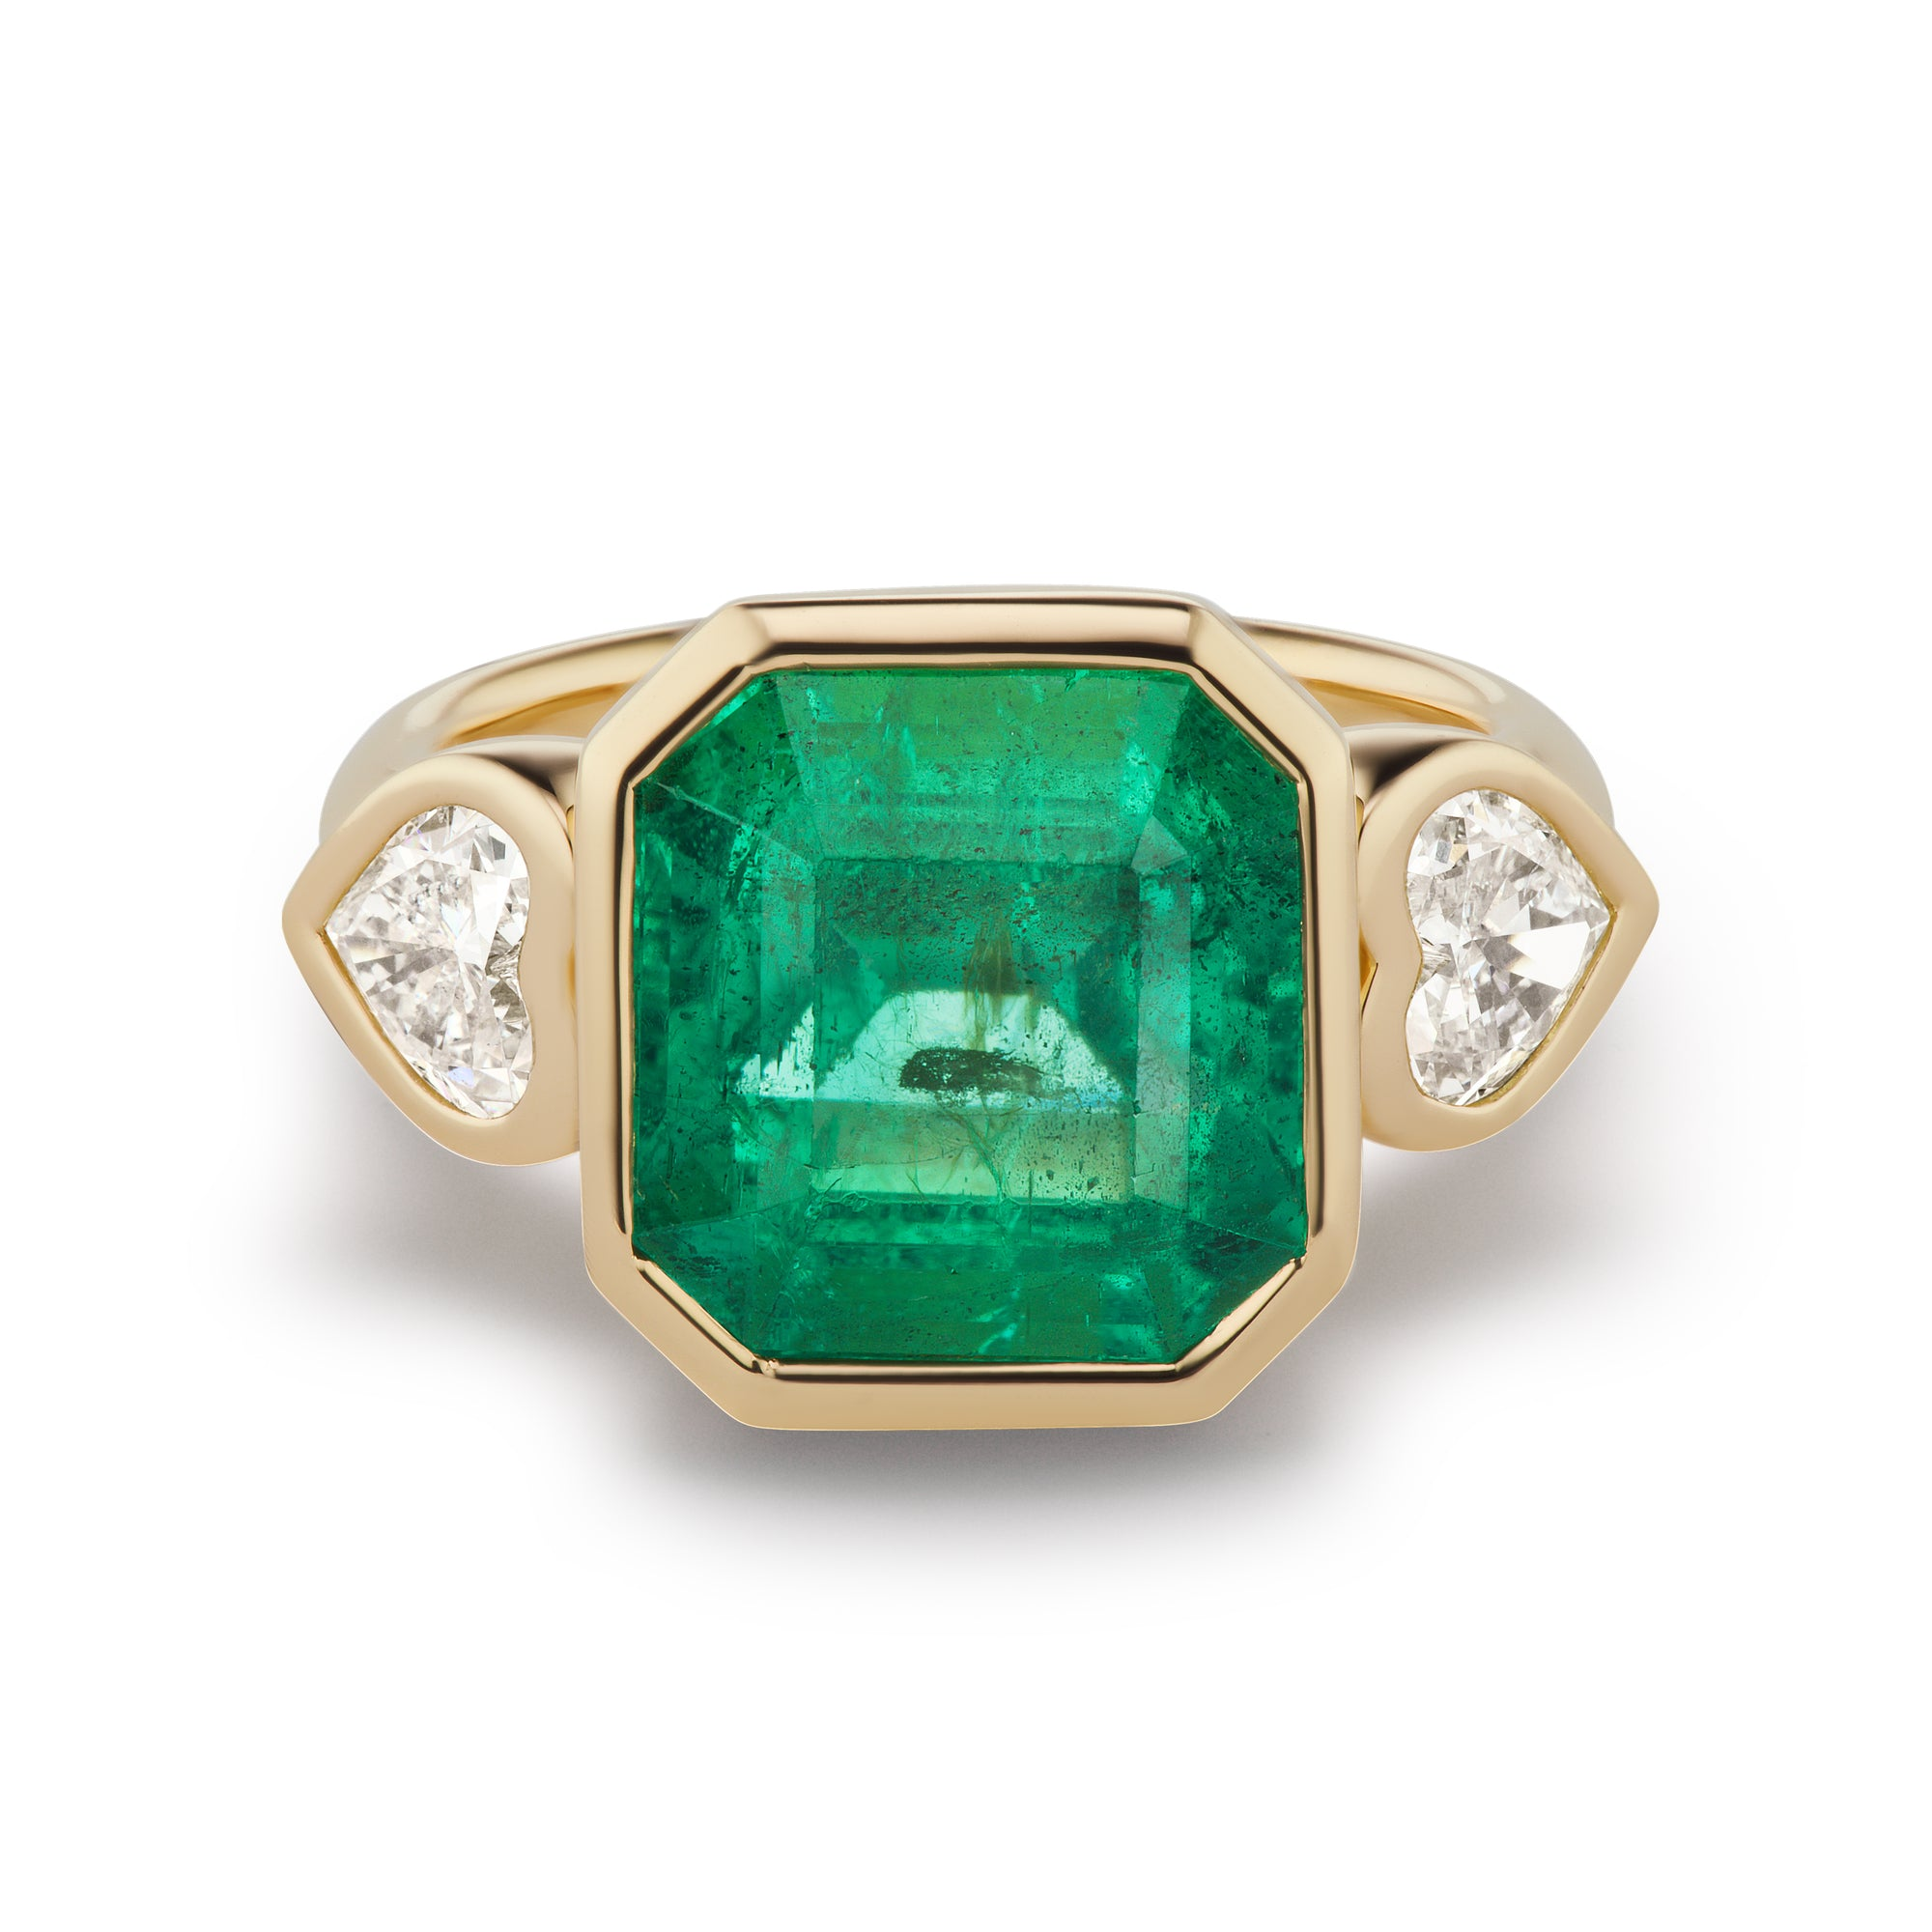 One-of-a-Kind Emerald Ring with Diamond Heart Sides